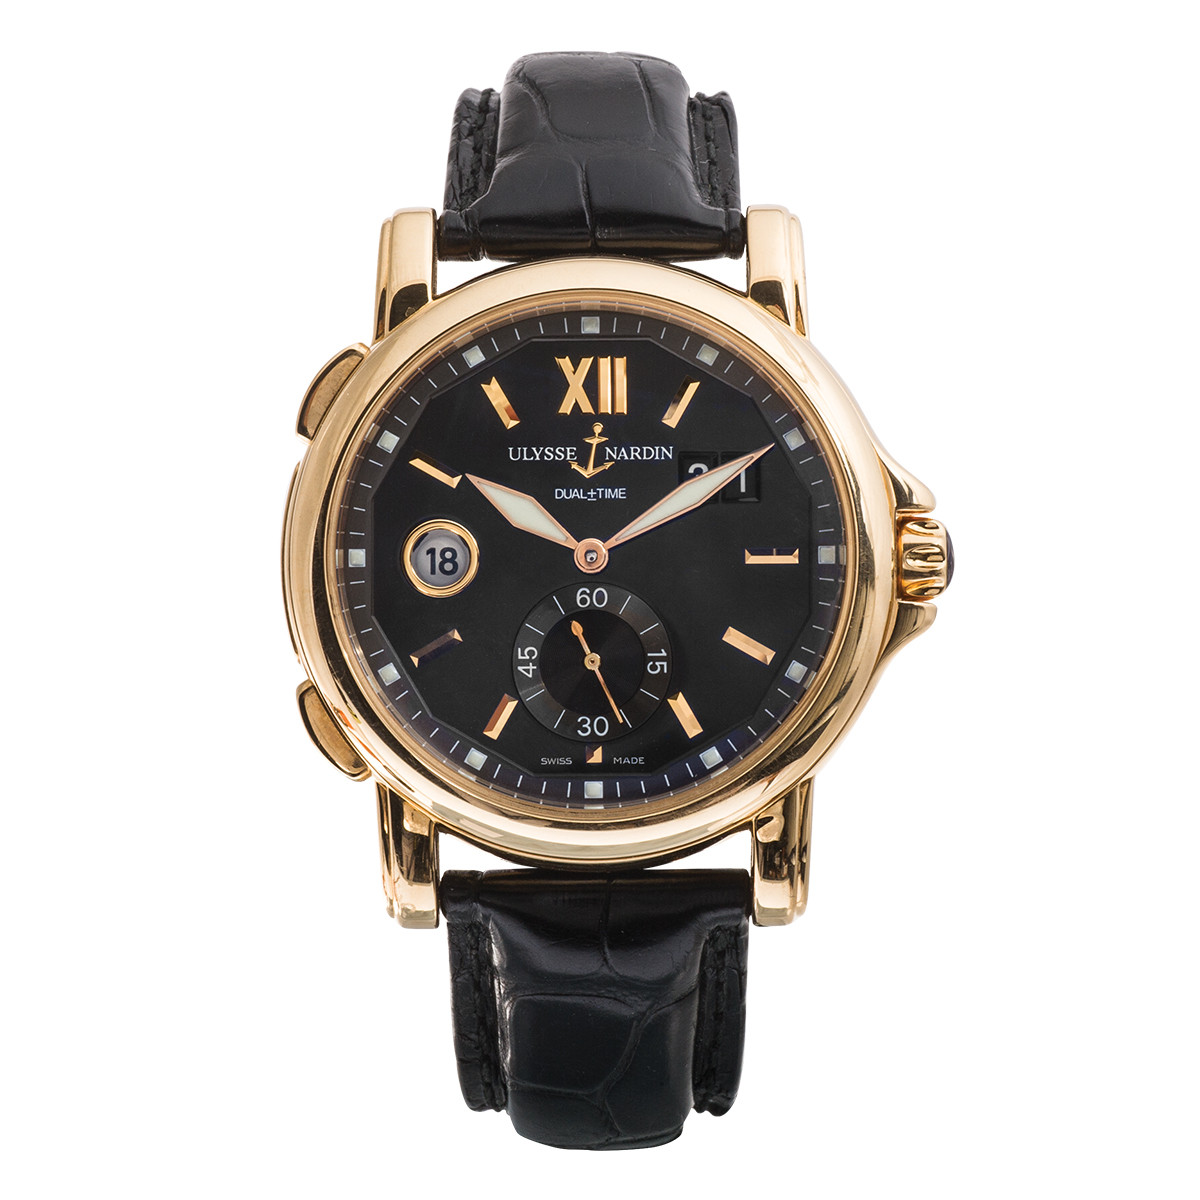 Preowned Ulysse Nardin GMT Dual Time